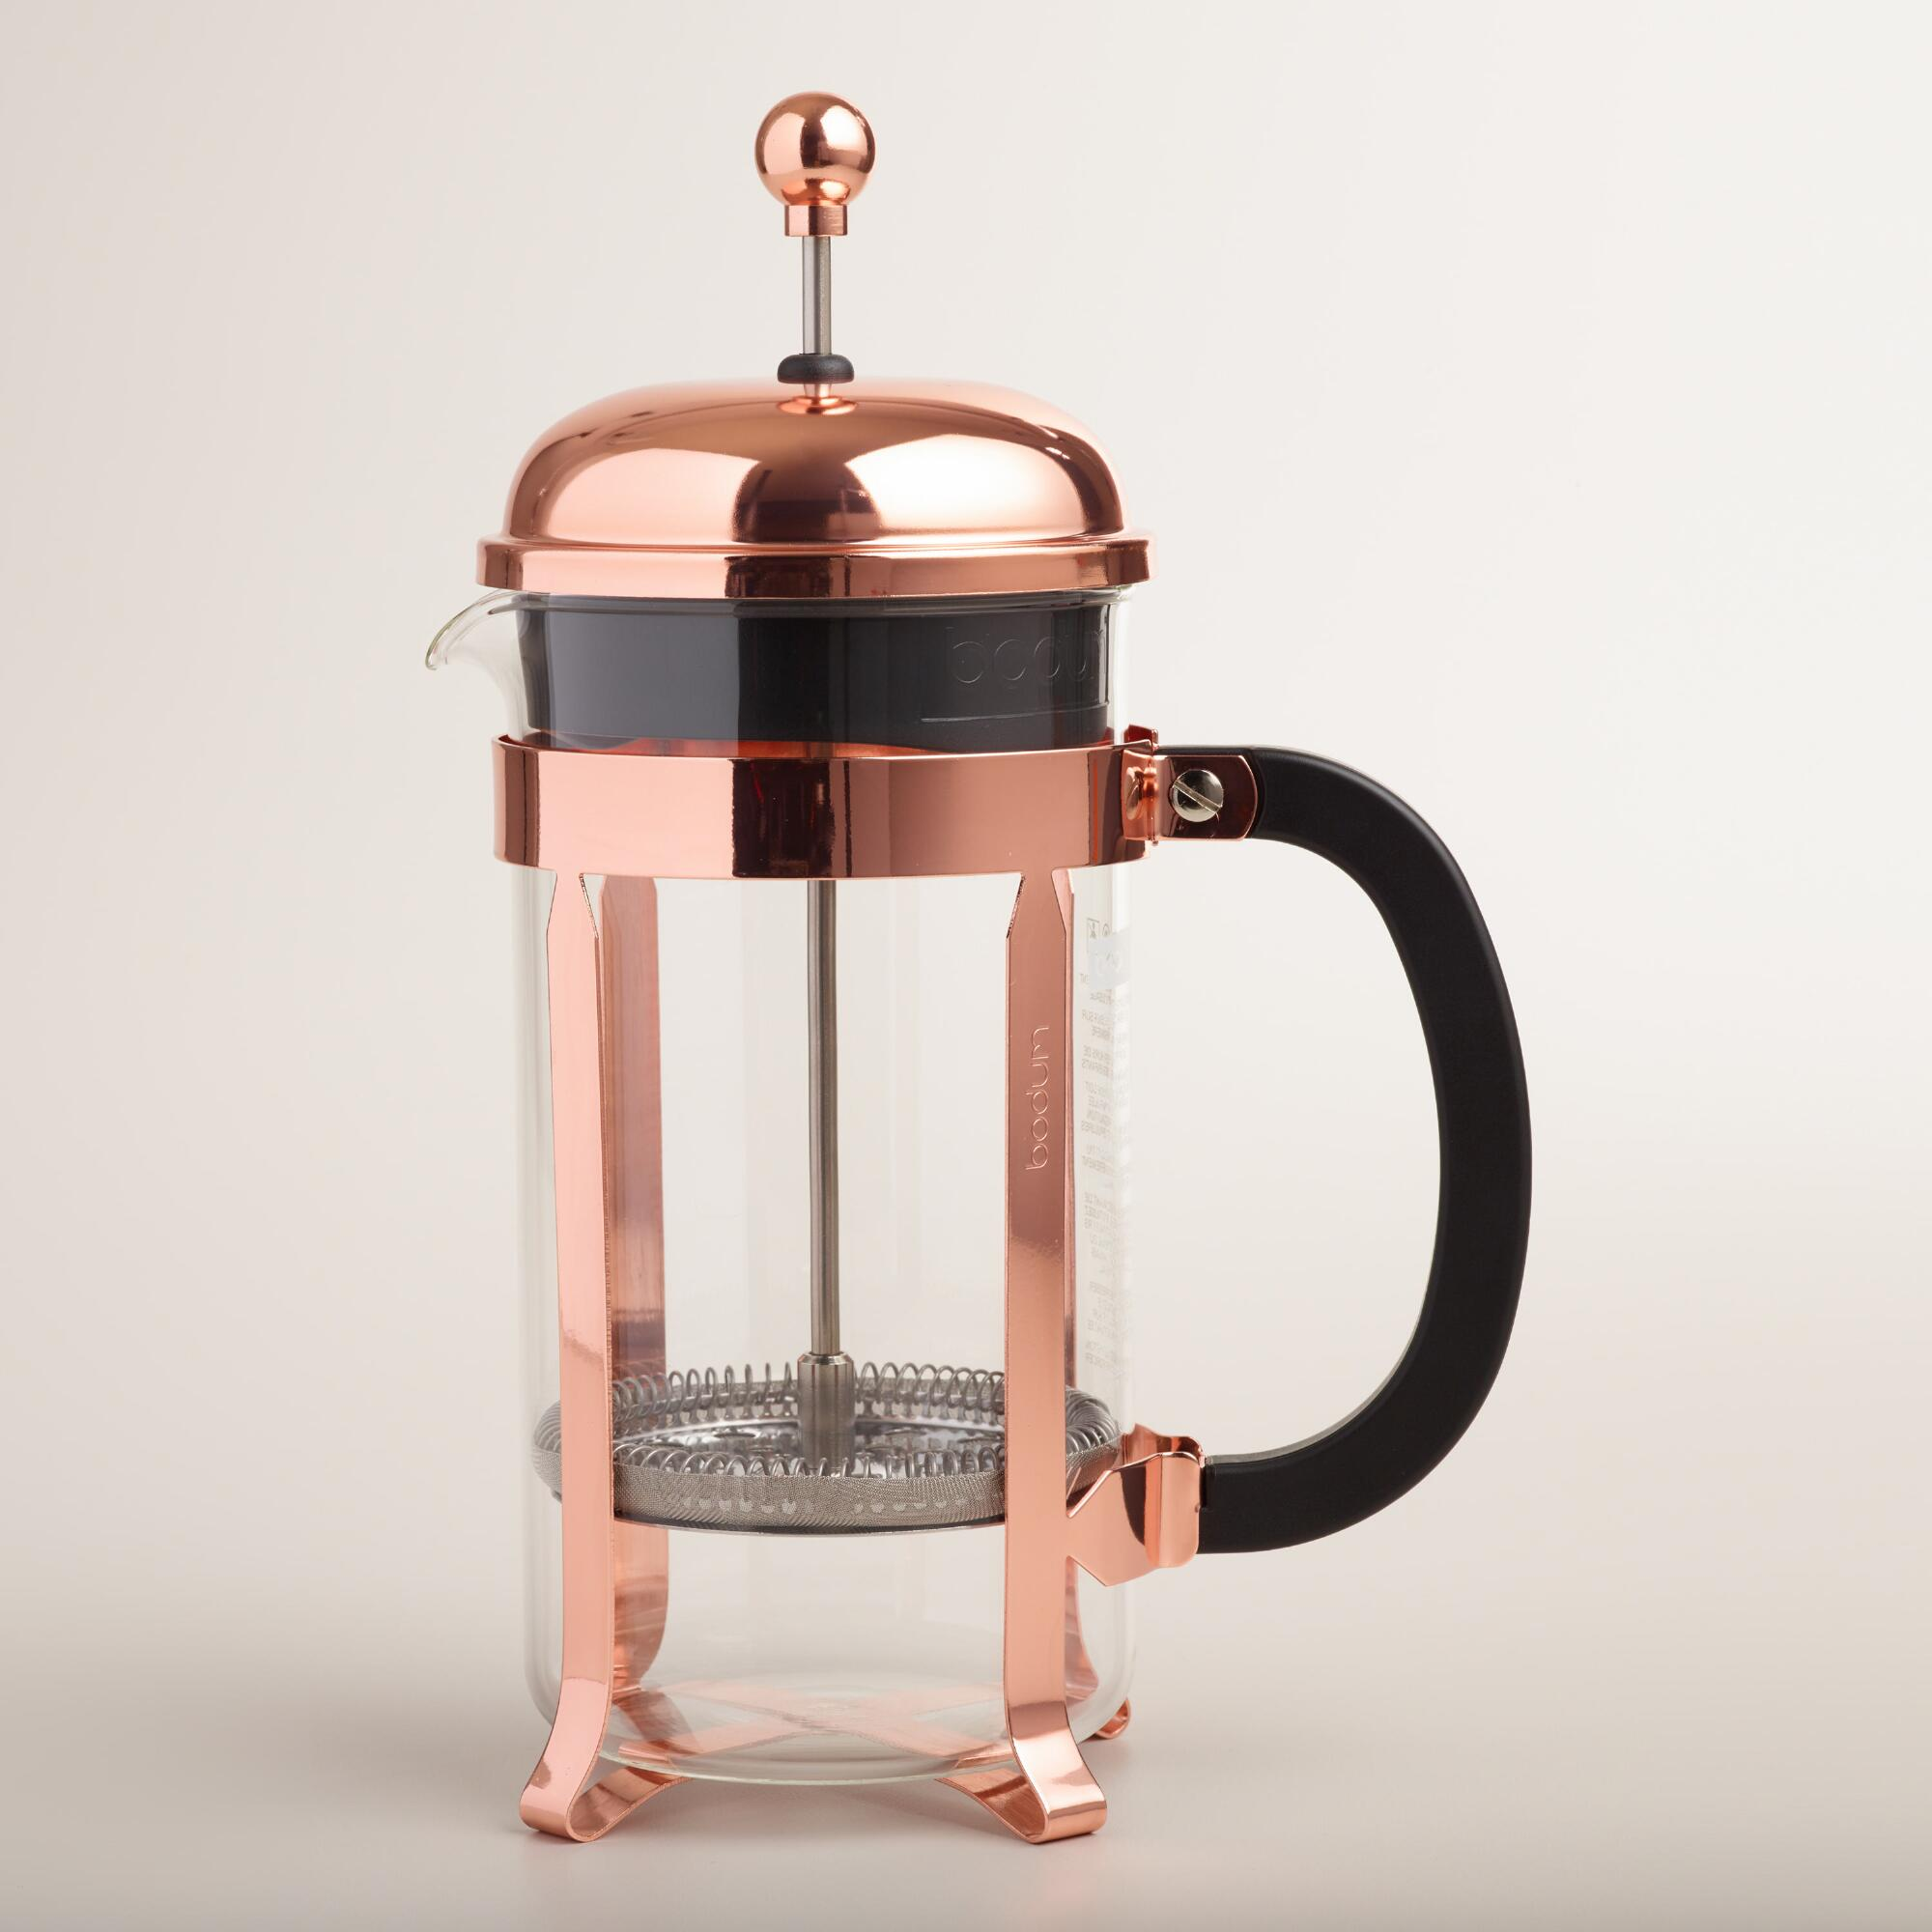 Bed bath beyond french press - Bed Bath Beyond French Press 17